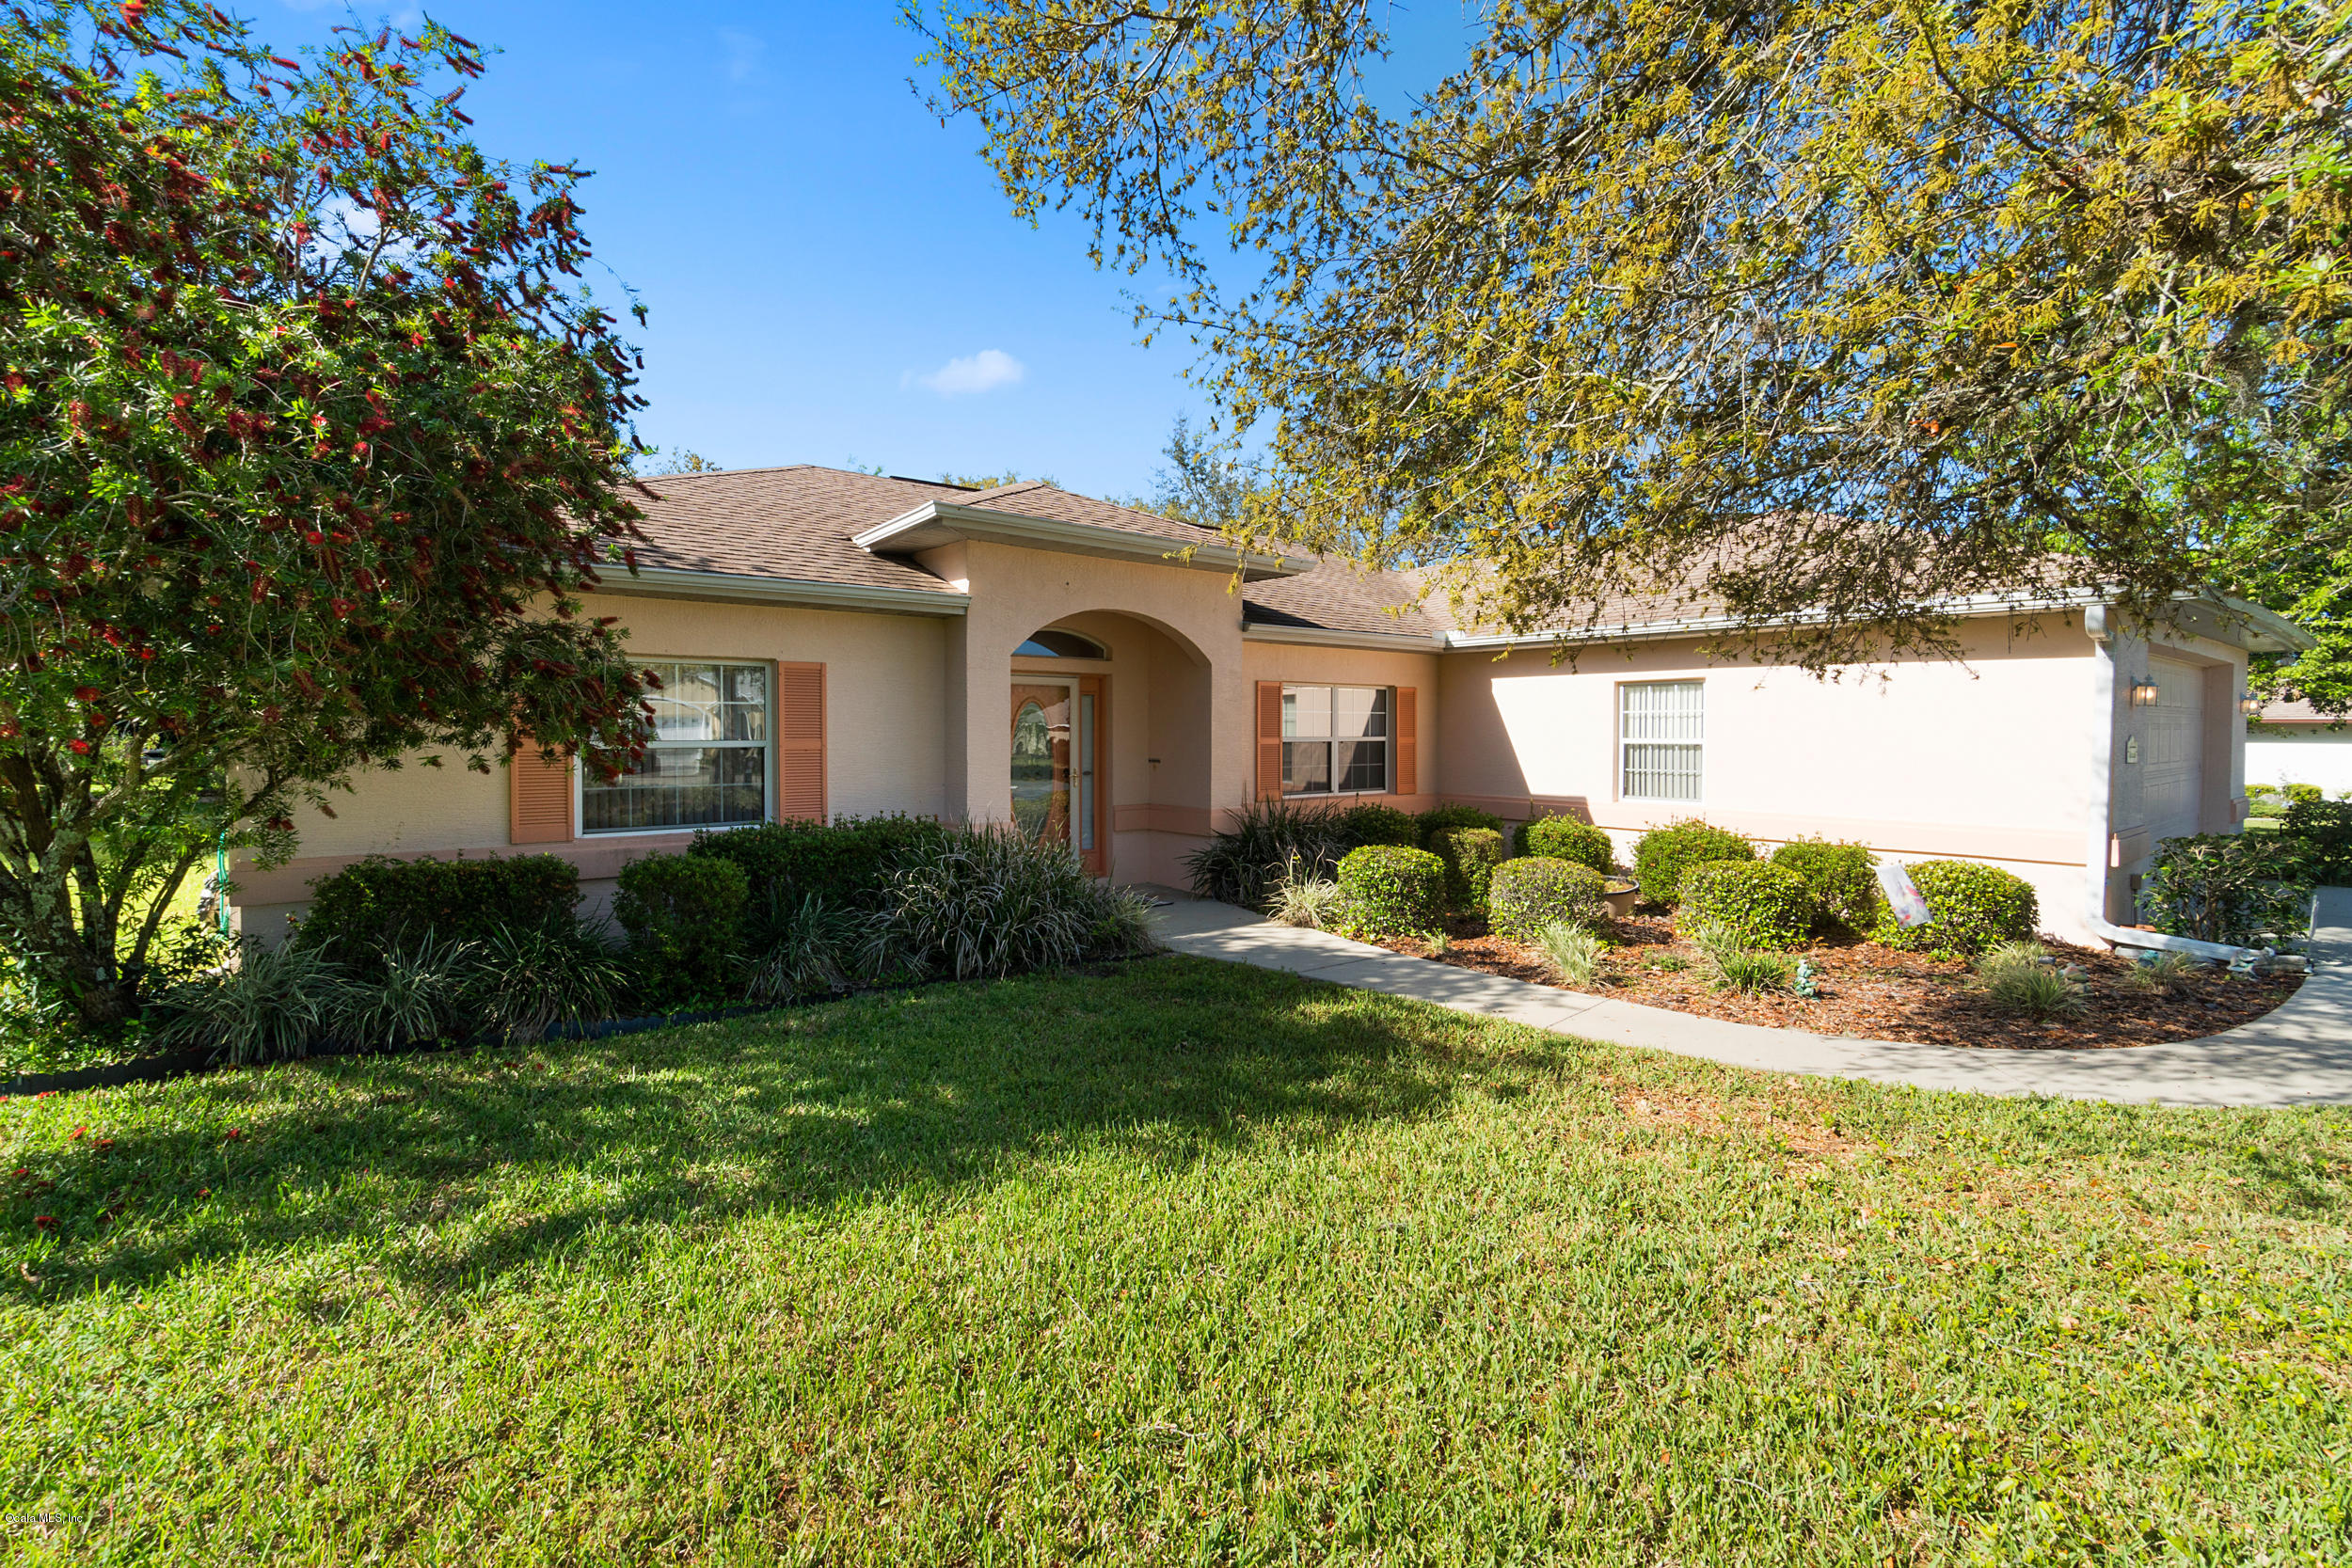 5280 SW 88TH PLACE, OCALA, FL 34476